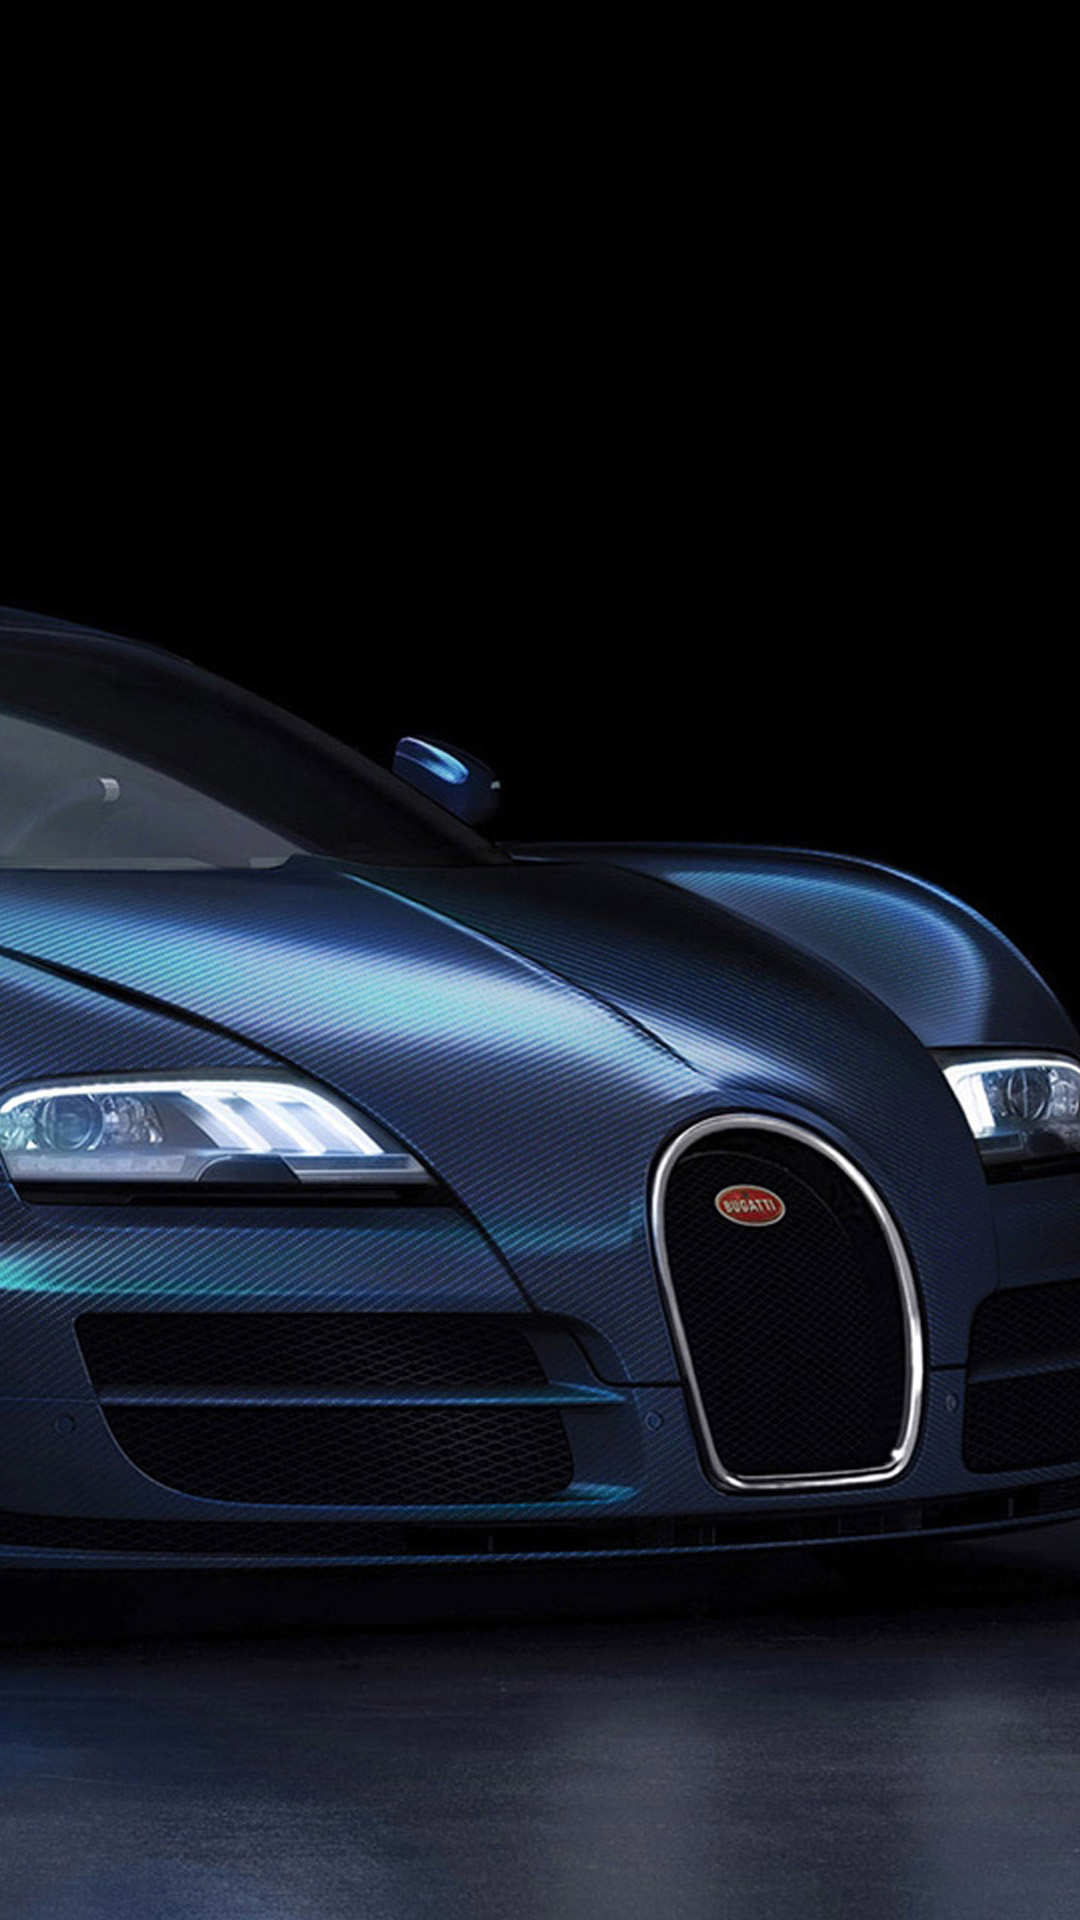 Bugatti Veyron Best Htc One Wallpapers Free And Easy To Download